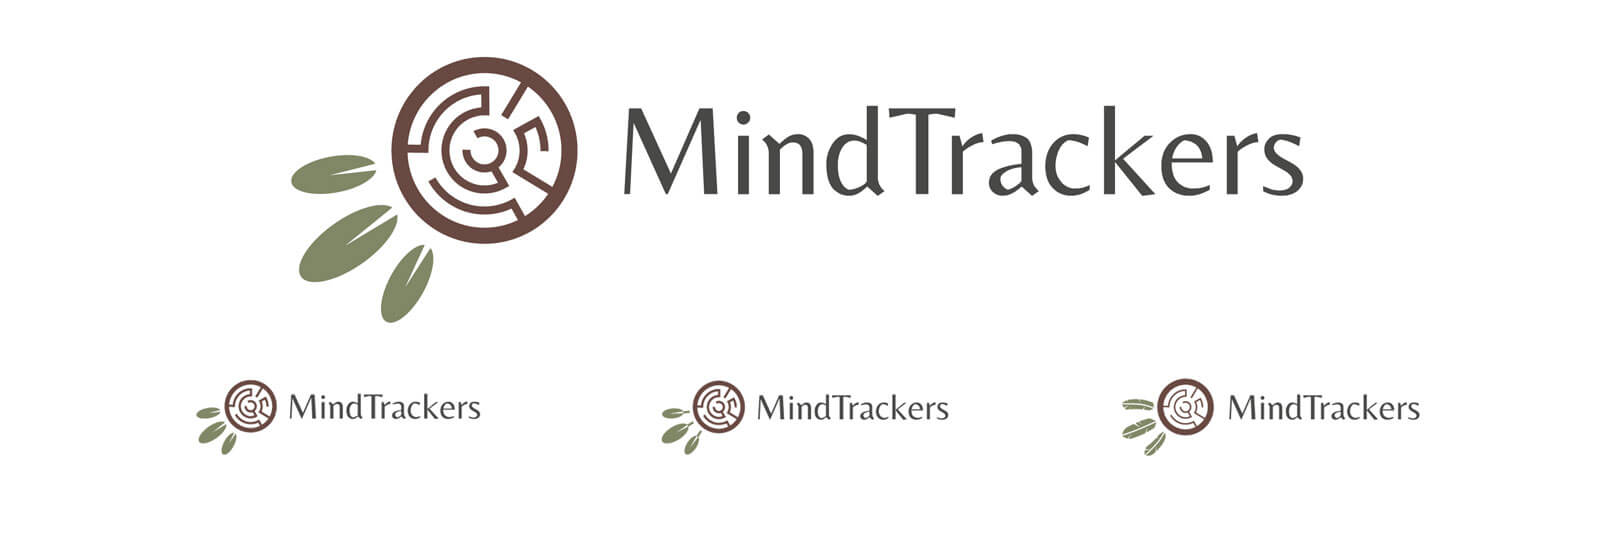 mind-trackers-illustrator-options